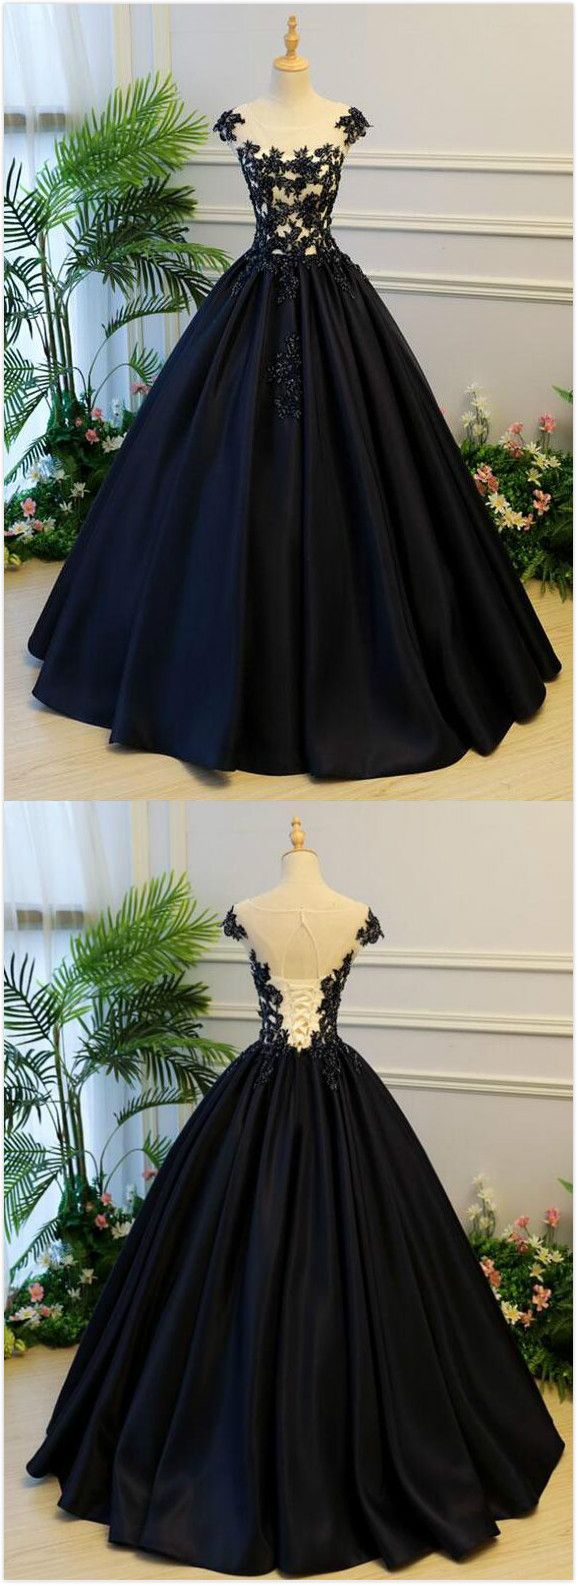 Generous Prom Dress,Ball Gown Prom Dress,Stain Prom Dress,Long Party Dress,A-Line Round Neck Cap Sleeves Prom Dress, Lace-up Back Black Long Prom/Evening Dress with Beading